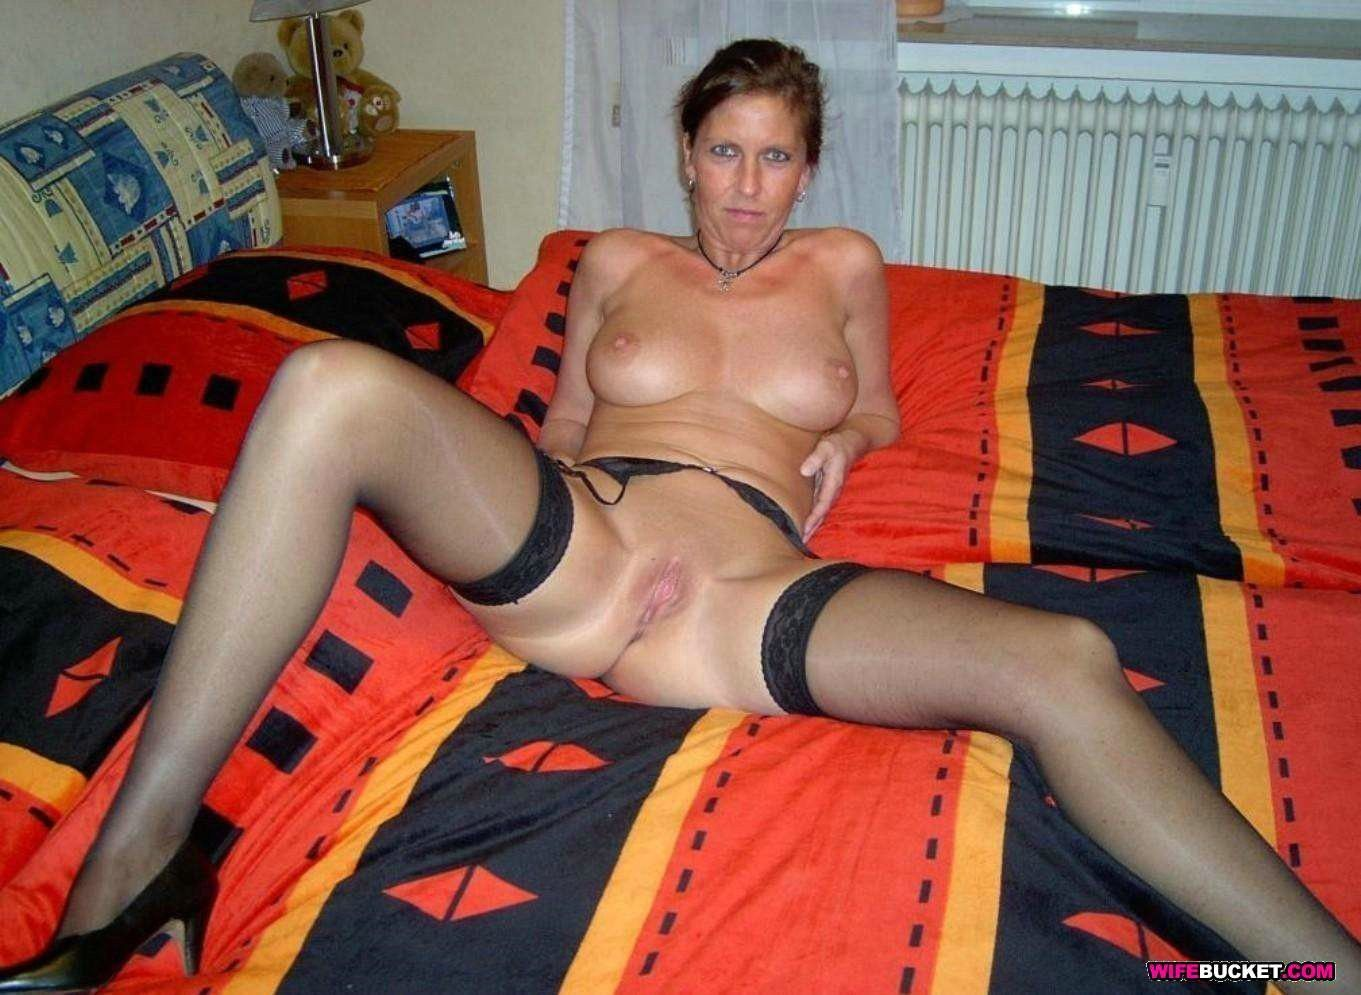 slut bdsm Mature wife amateur